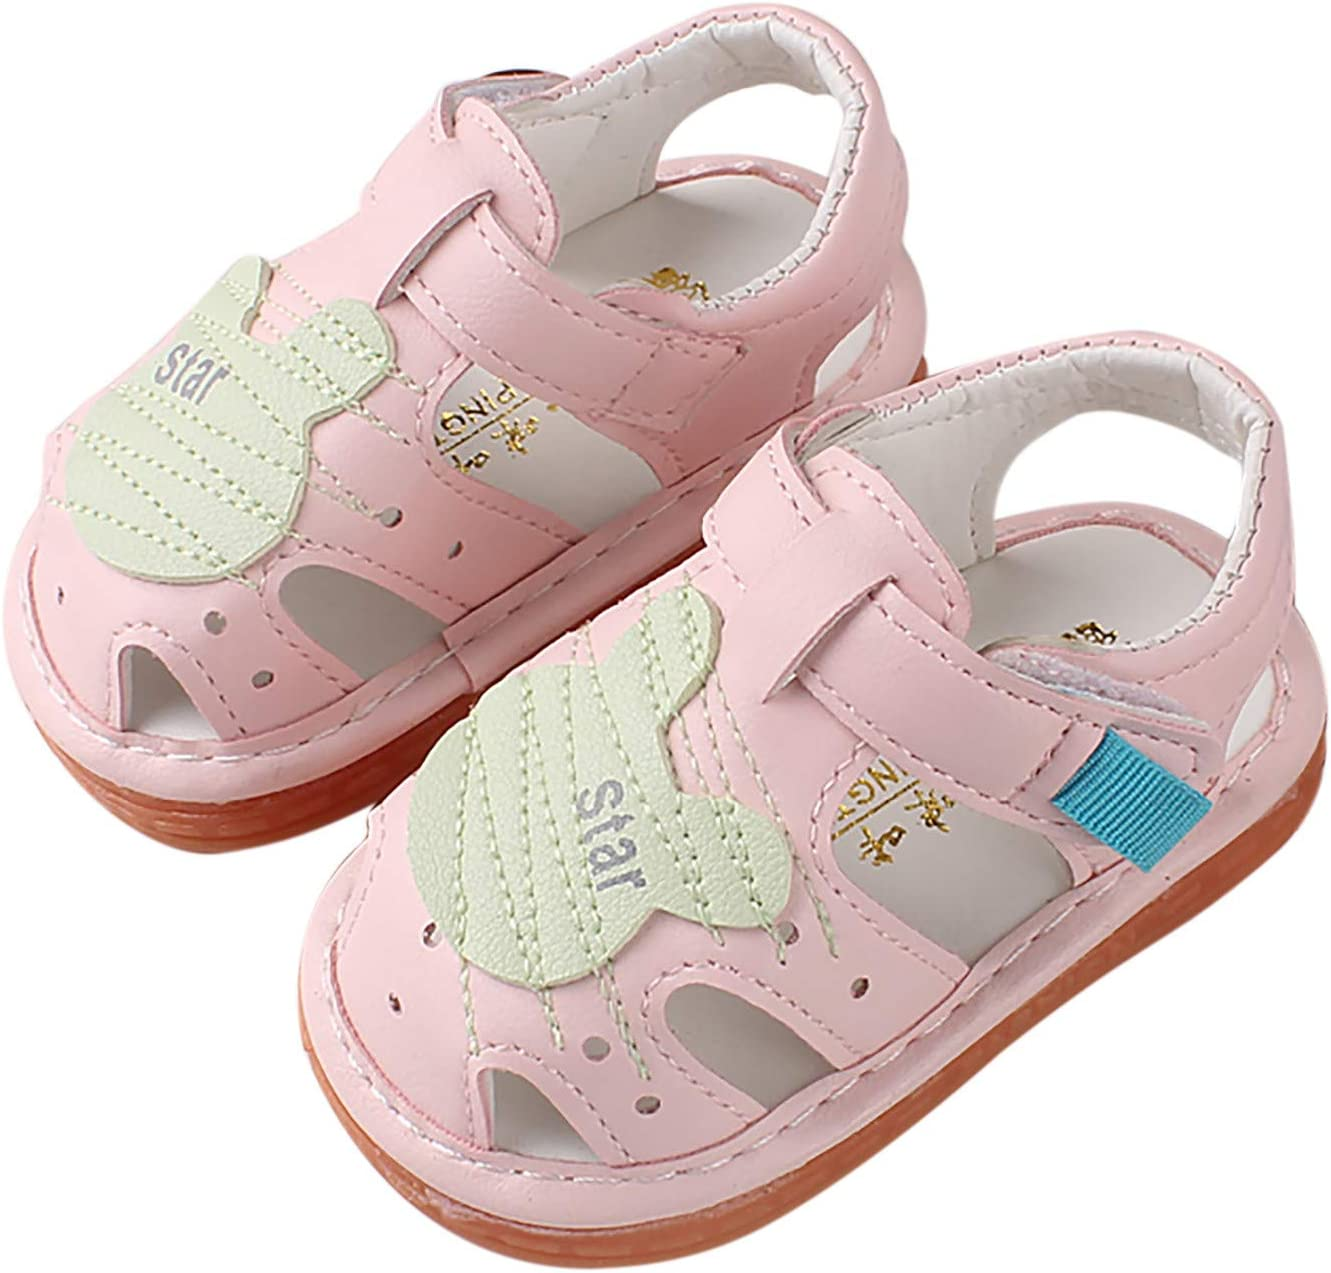 Store Yeslove 3-24Month Baby List price Toddler Fashion Sandals,Baby Sandal Boy